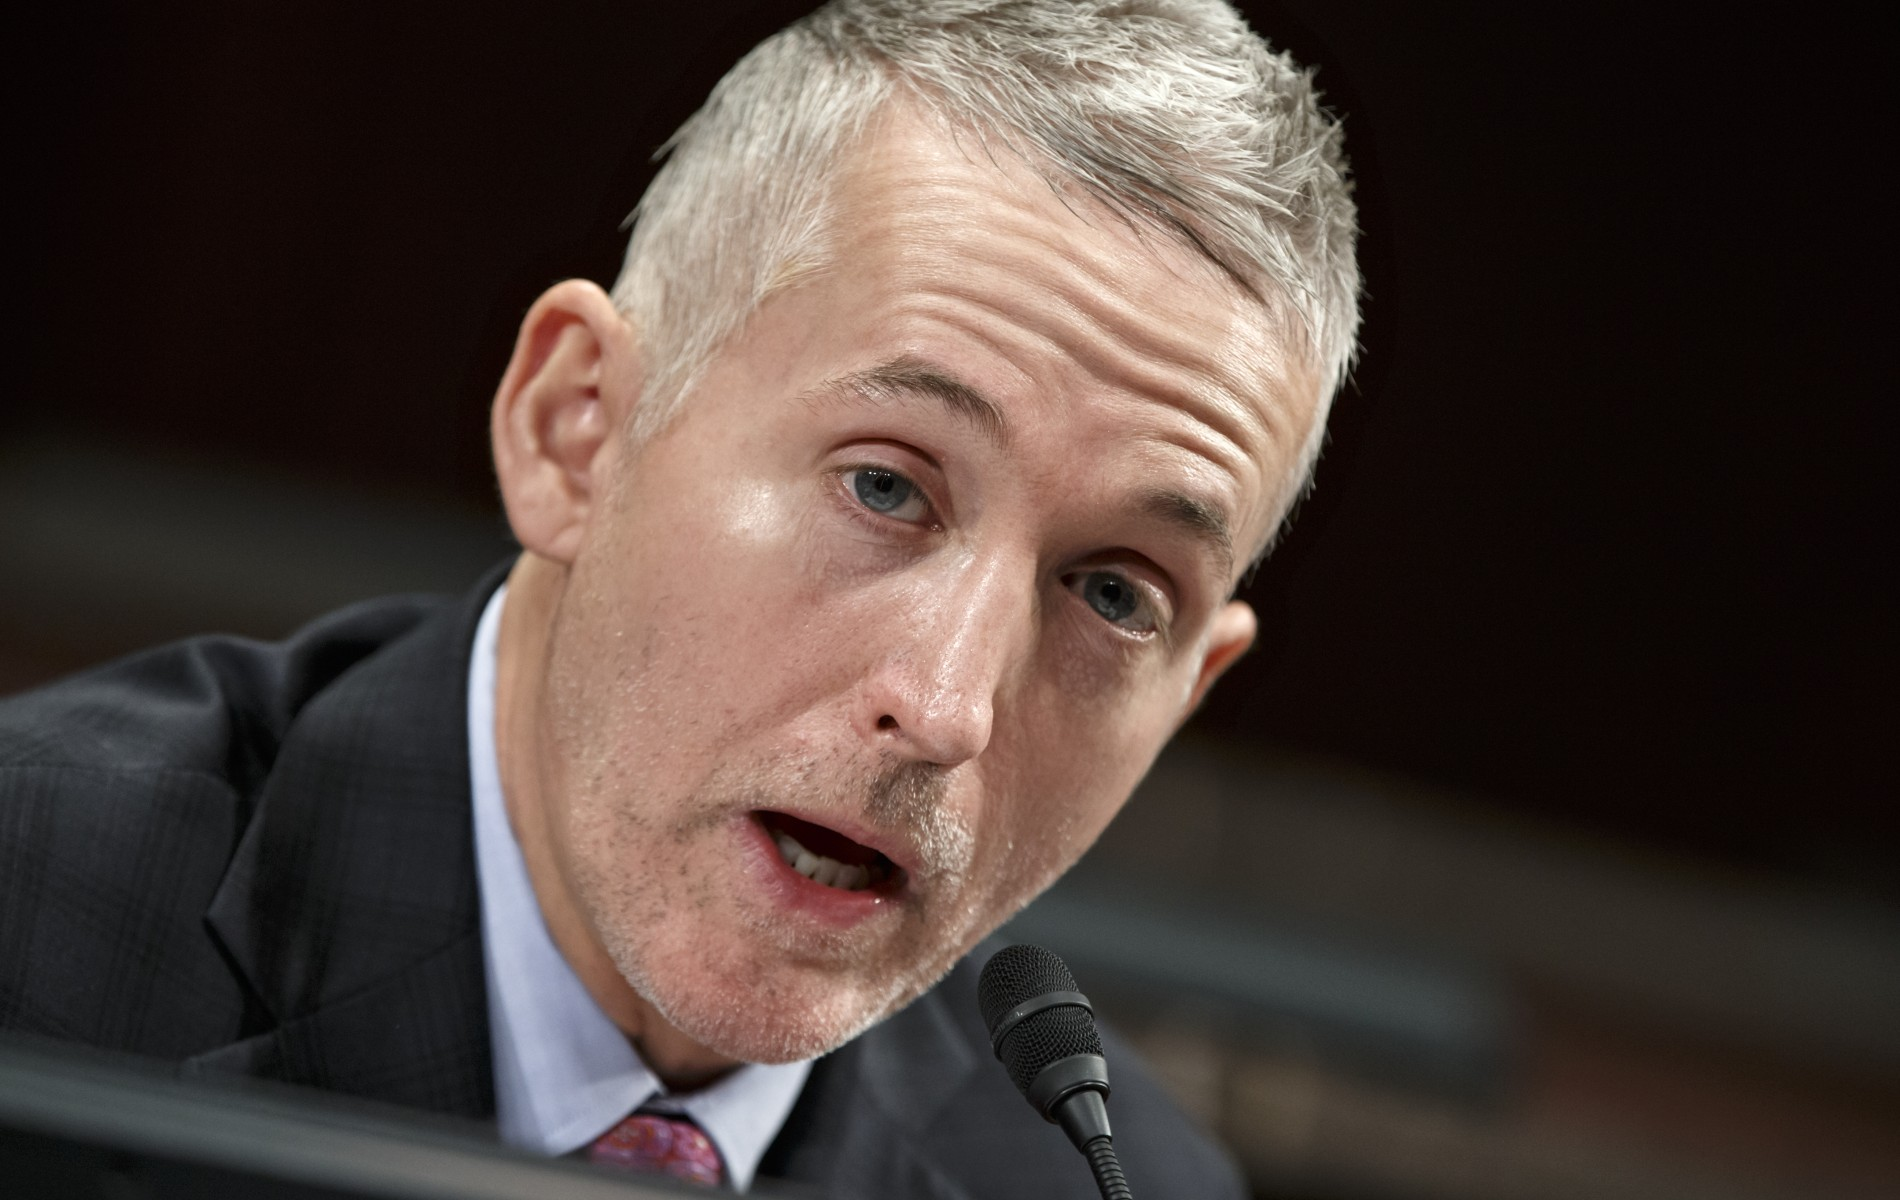 President Vs Gop >> The GOP's Benghazi scam is exploding in its face: Why the latest stunning revelations will only ...